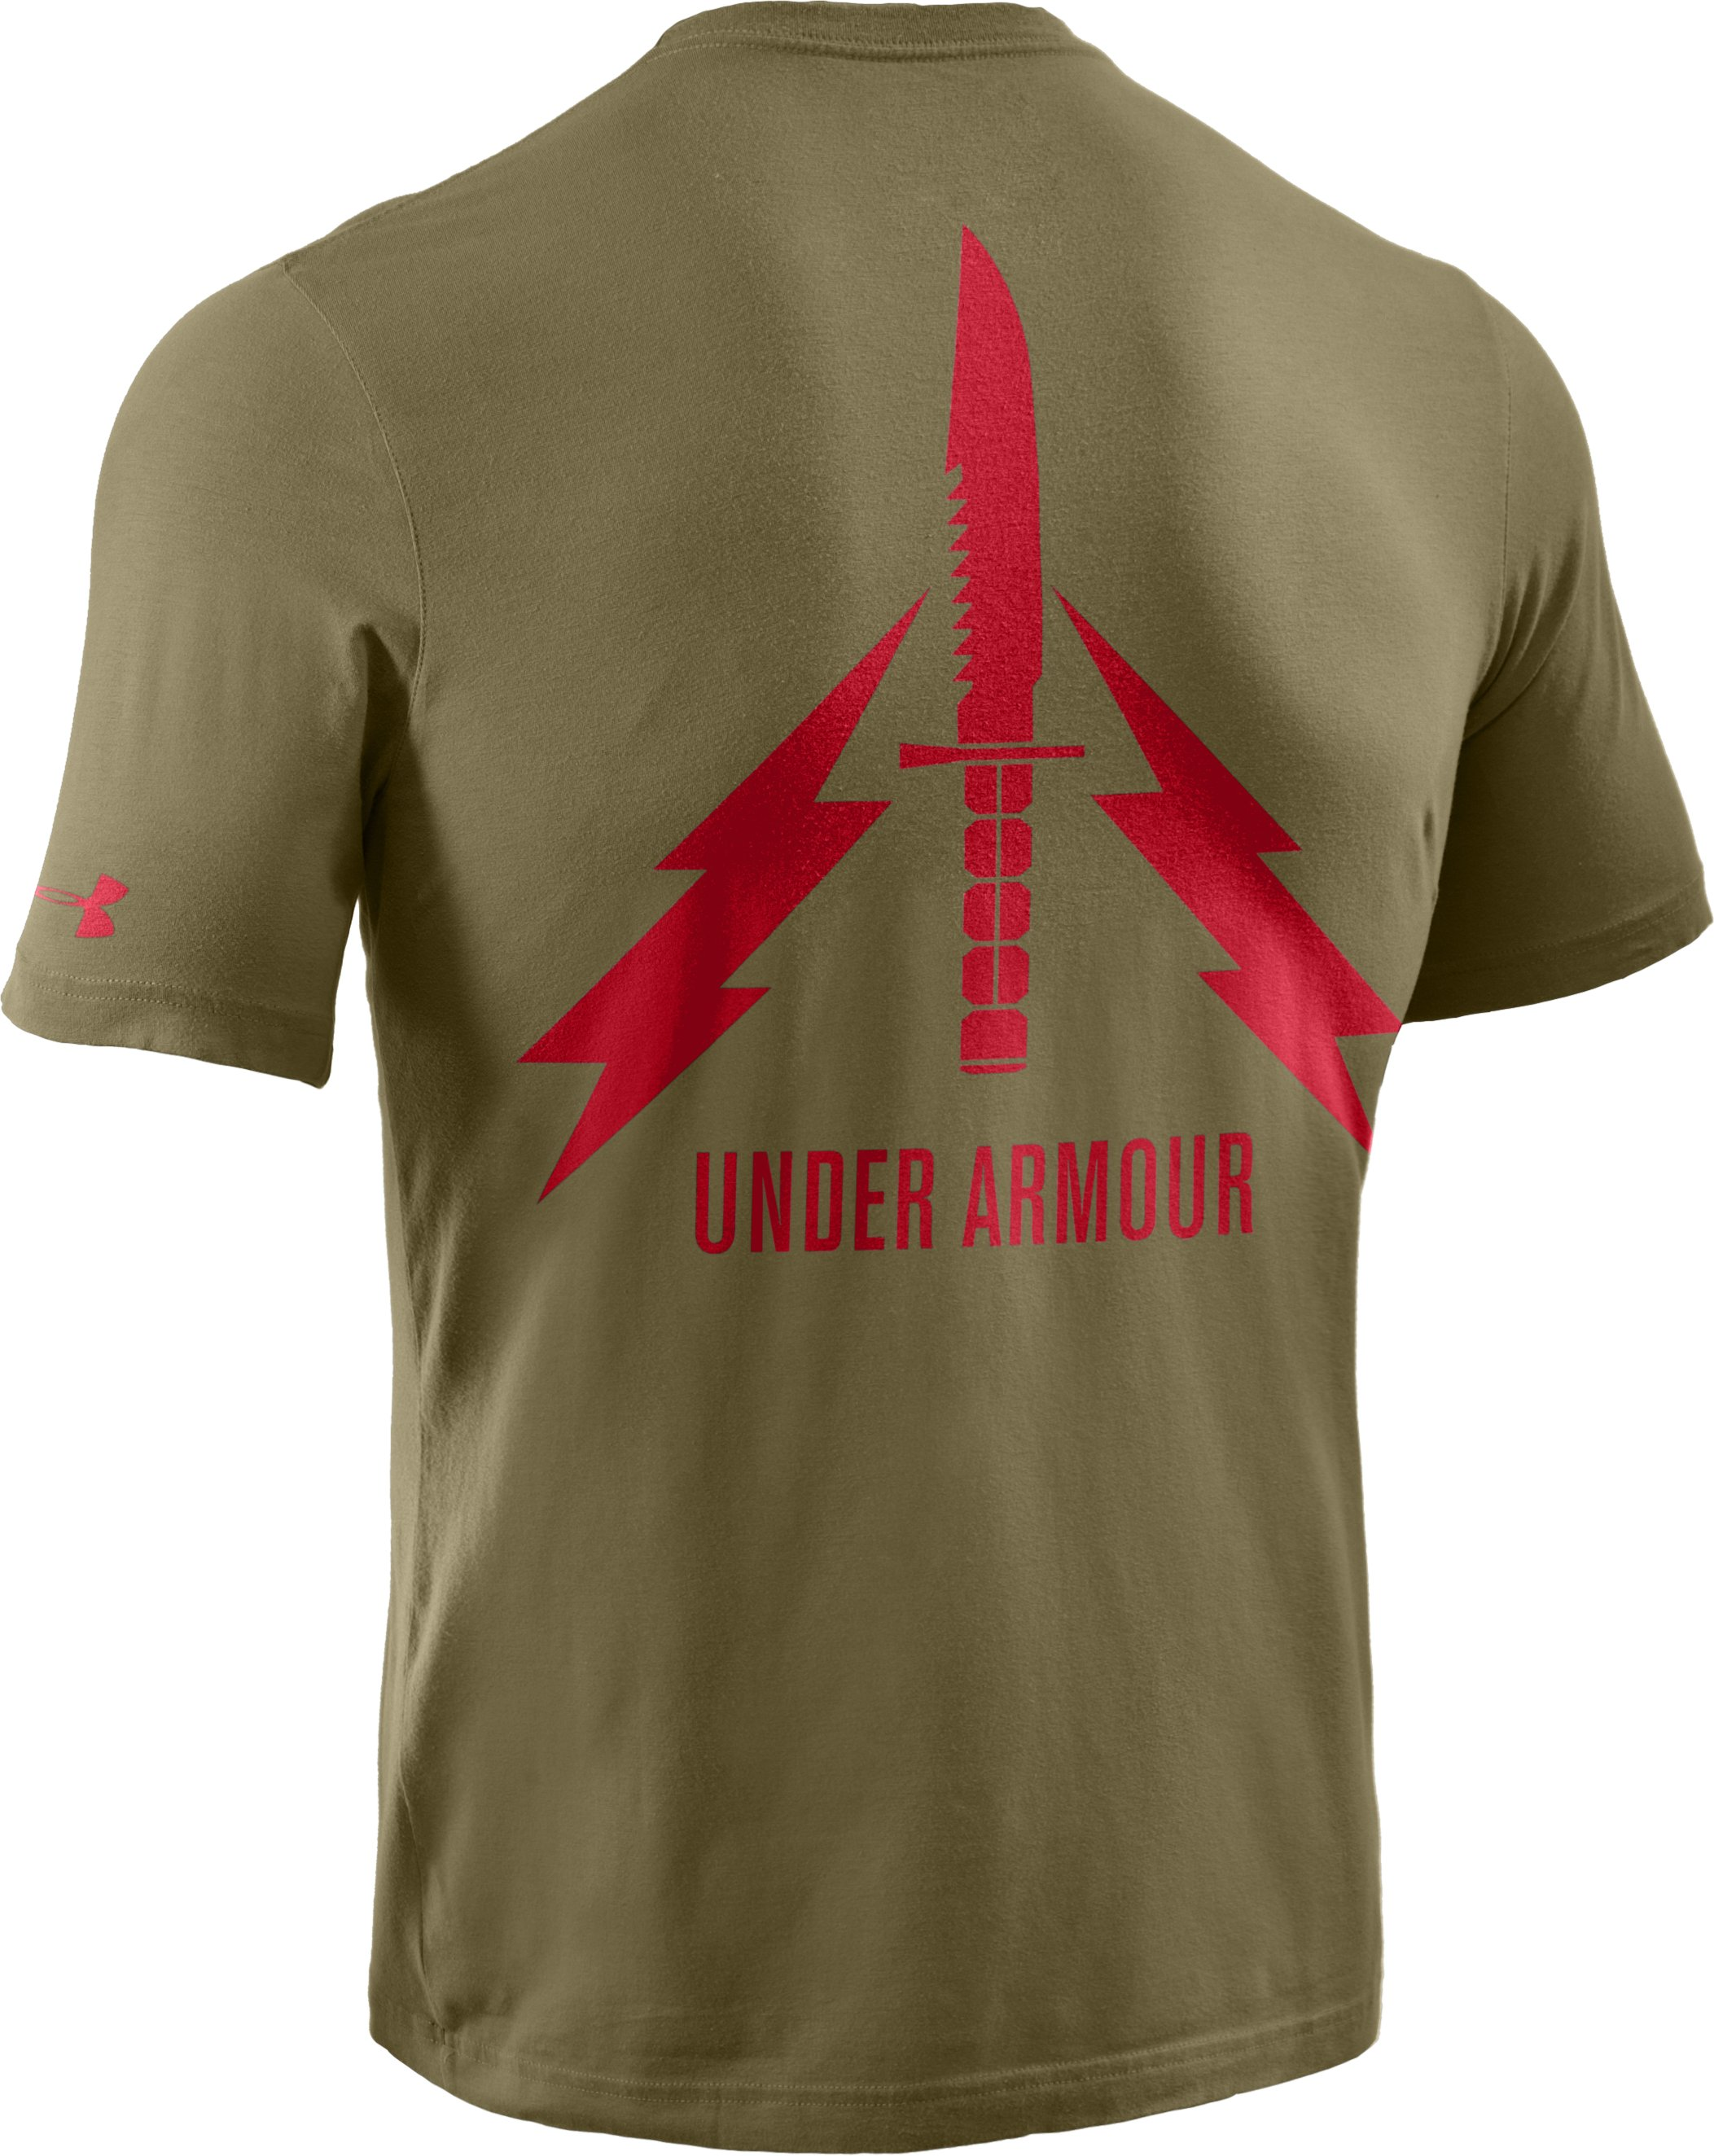 Men's Knife Charged Cotton® T-Shirt, Marine OD Green